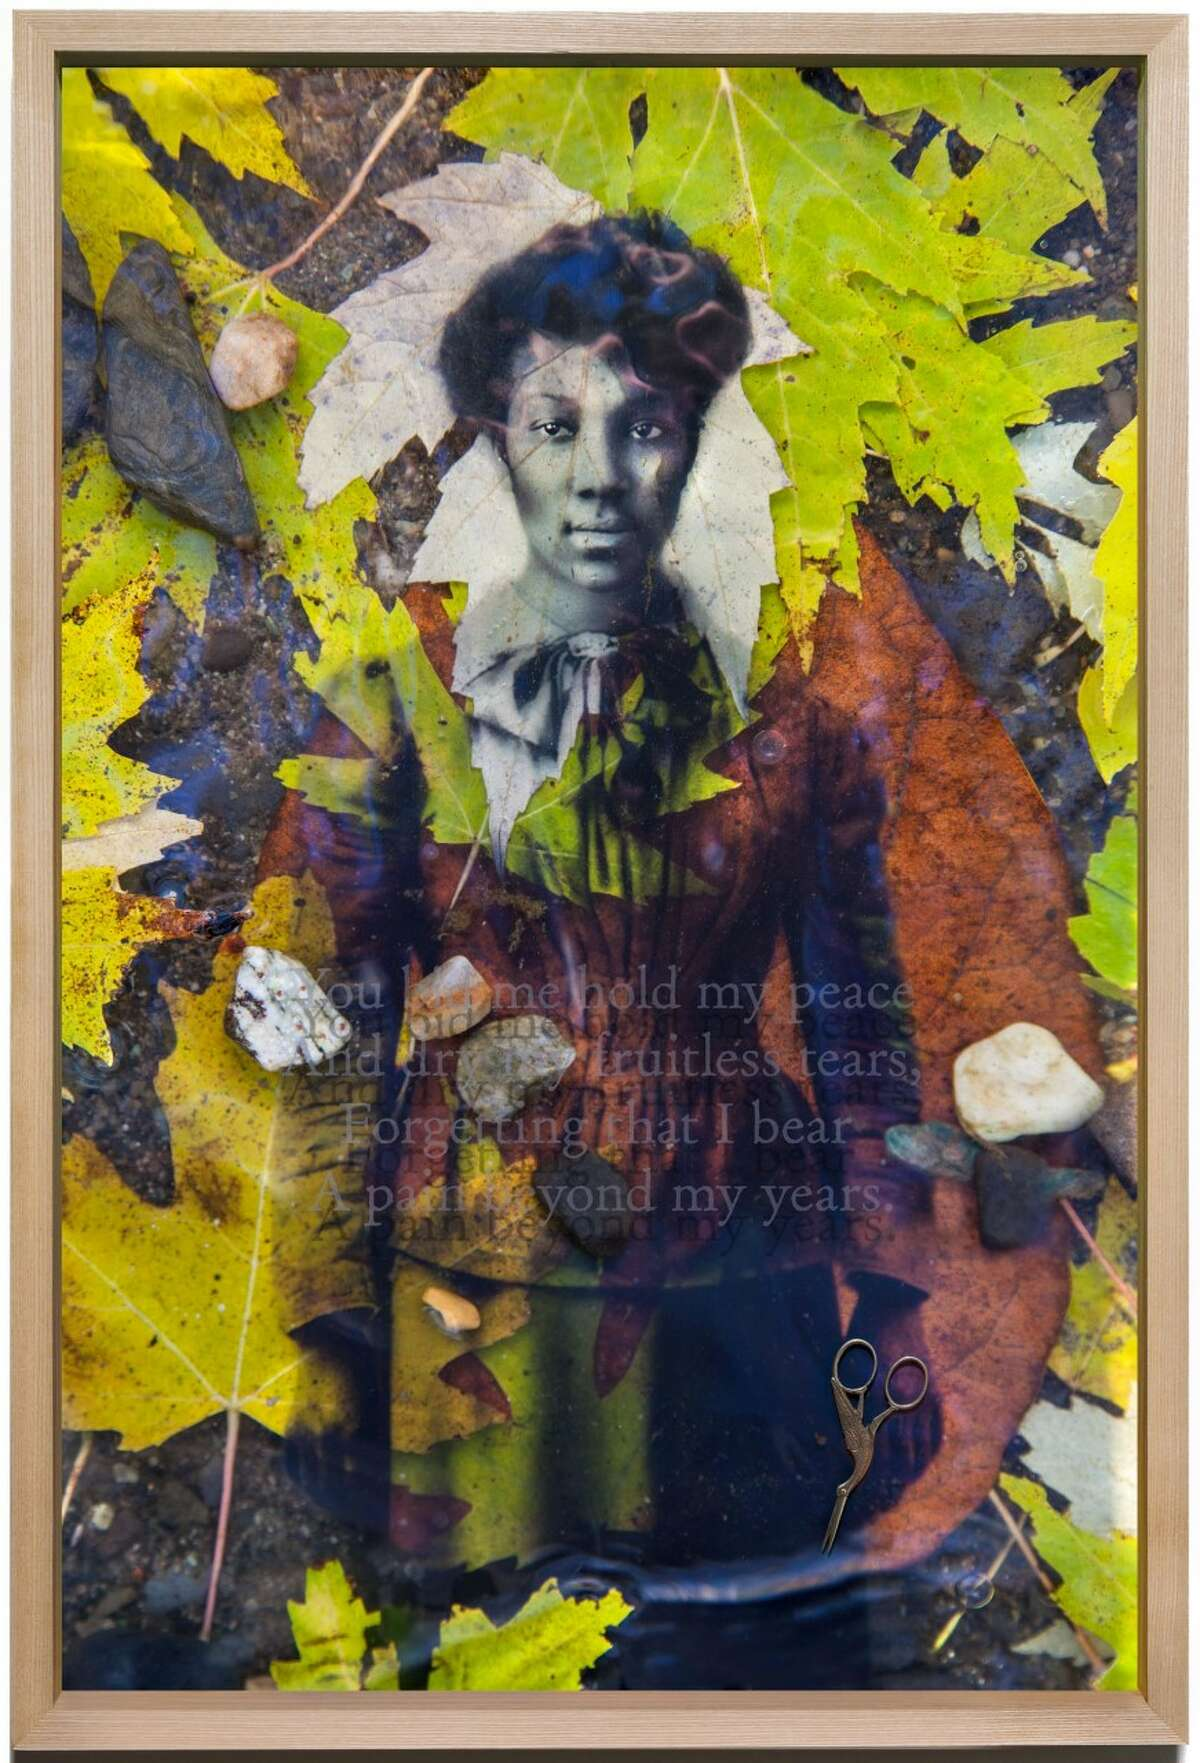 Daesha Devón Harris, You bid me hold my peace And dry my fruitless tears, Forgetting that I bear A pain beyond my years, from Just Beyond the River, a Folktale, 2016. (Albany Center Gallery)